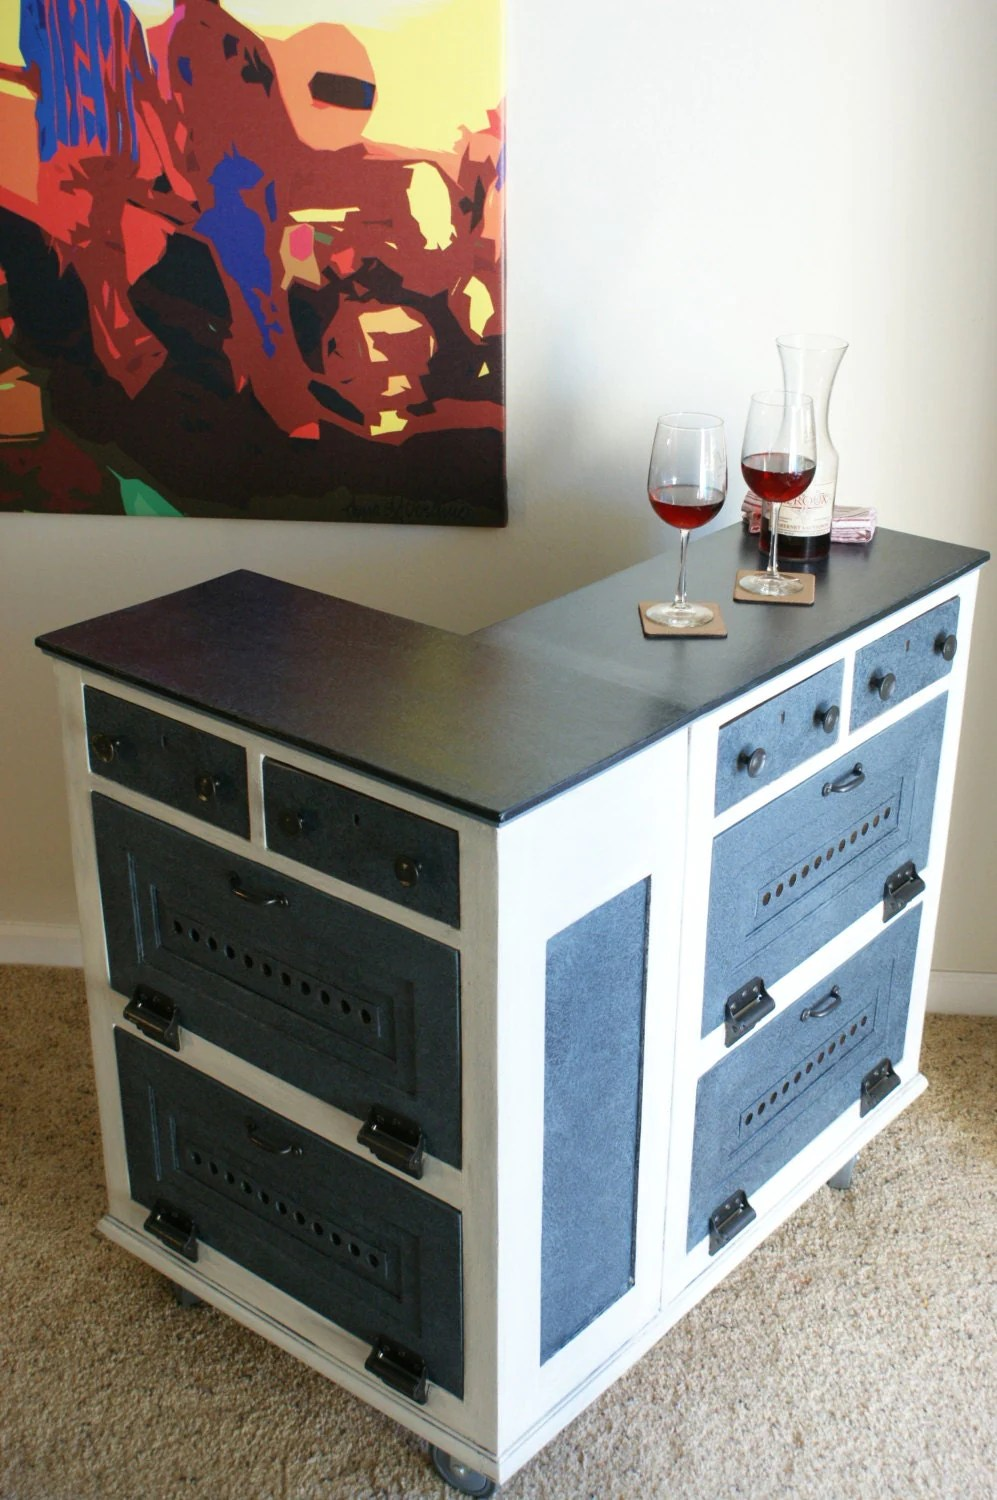 L Shaped Bar Counter Coffee Station Kitchen Island Patio Bar Corner Counter On Caster Wheels